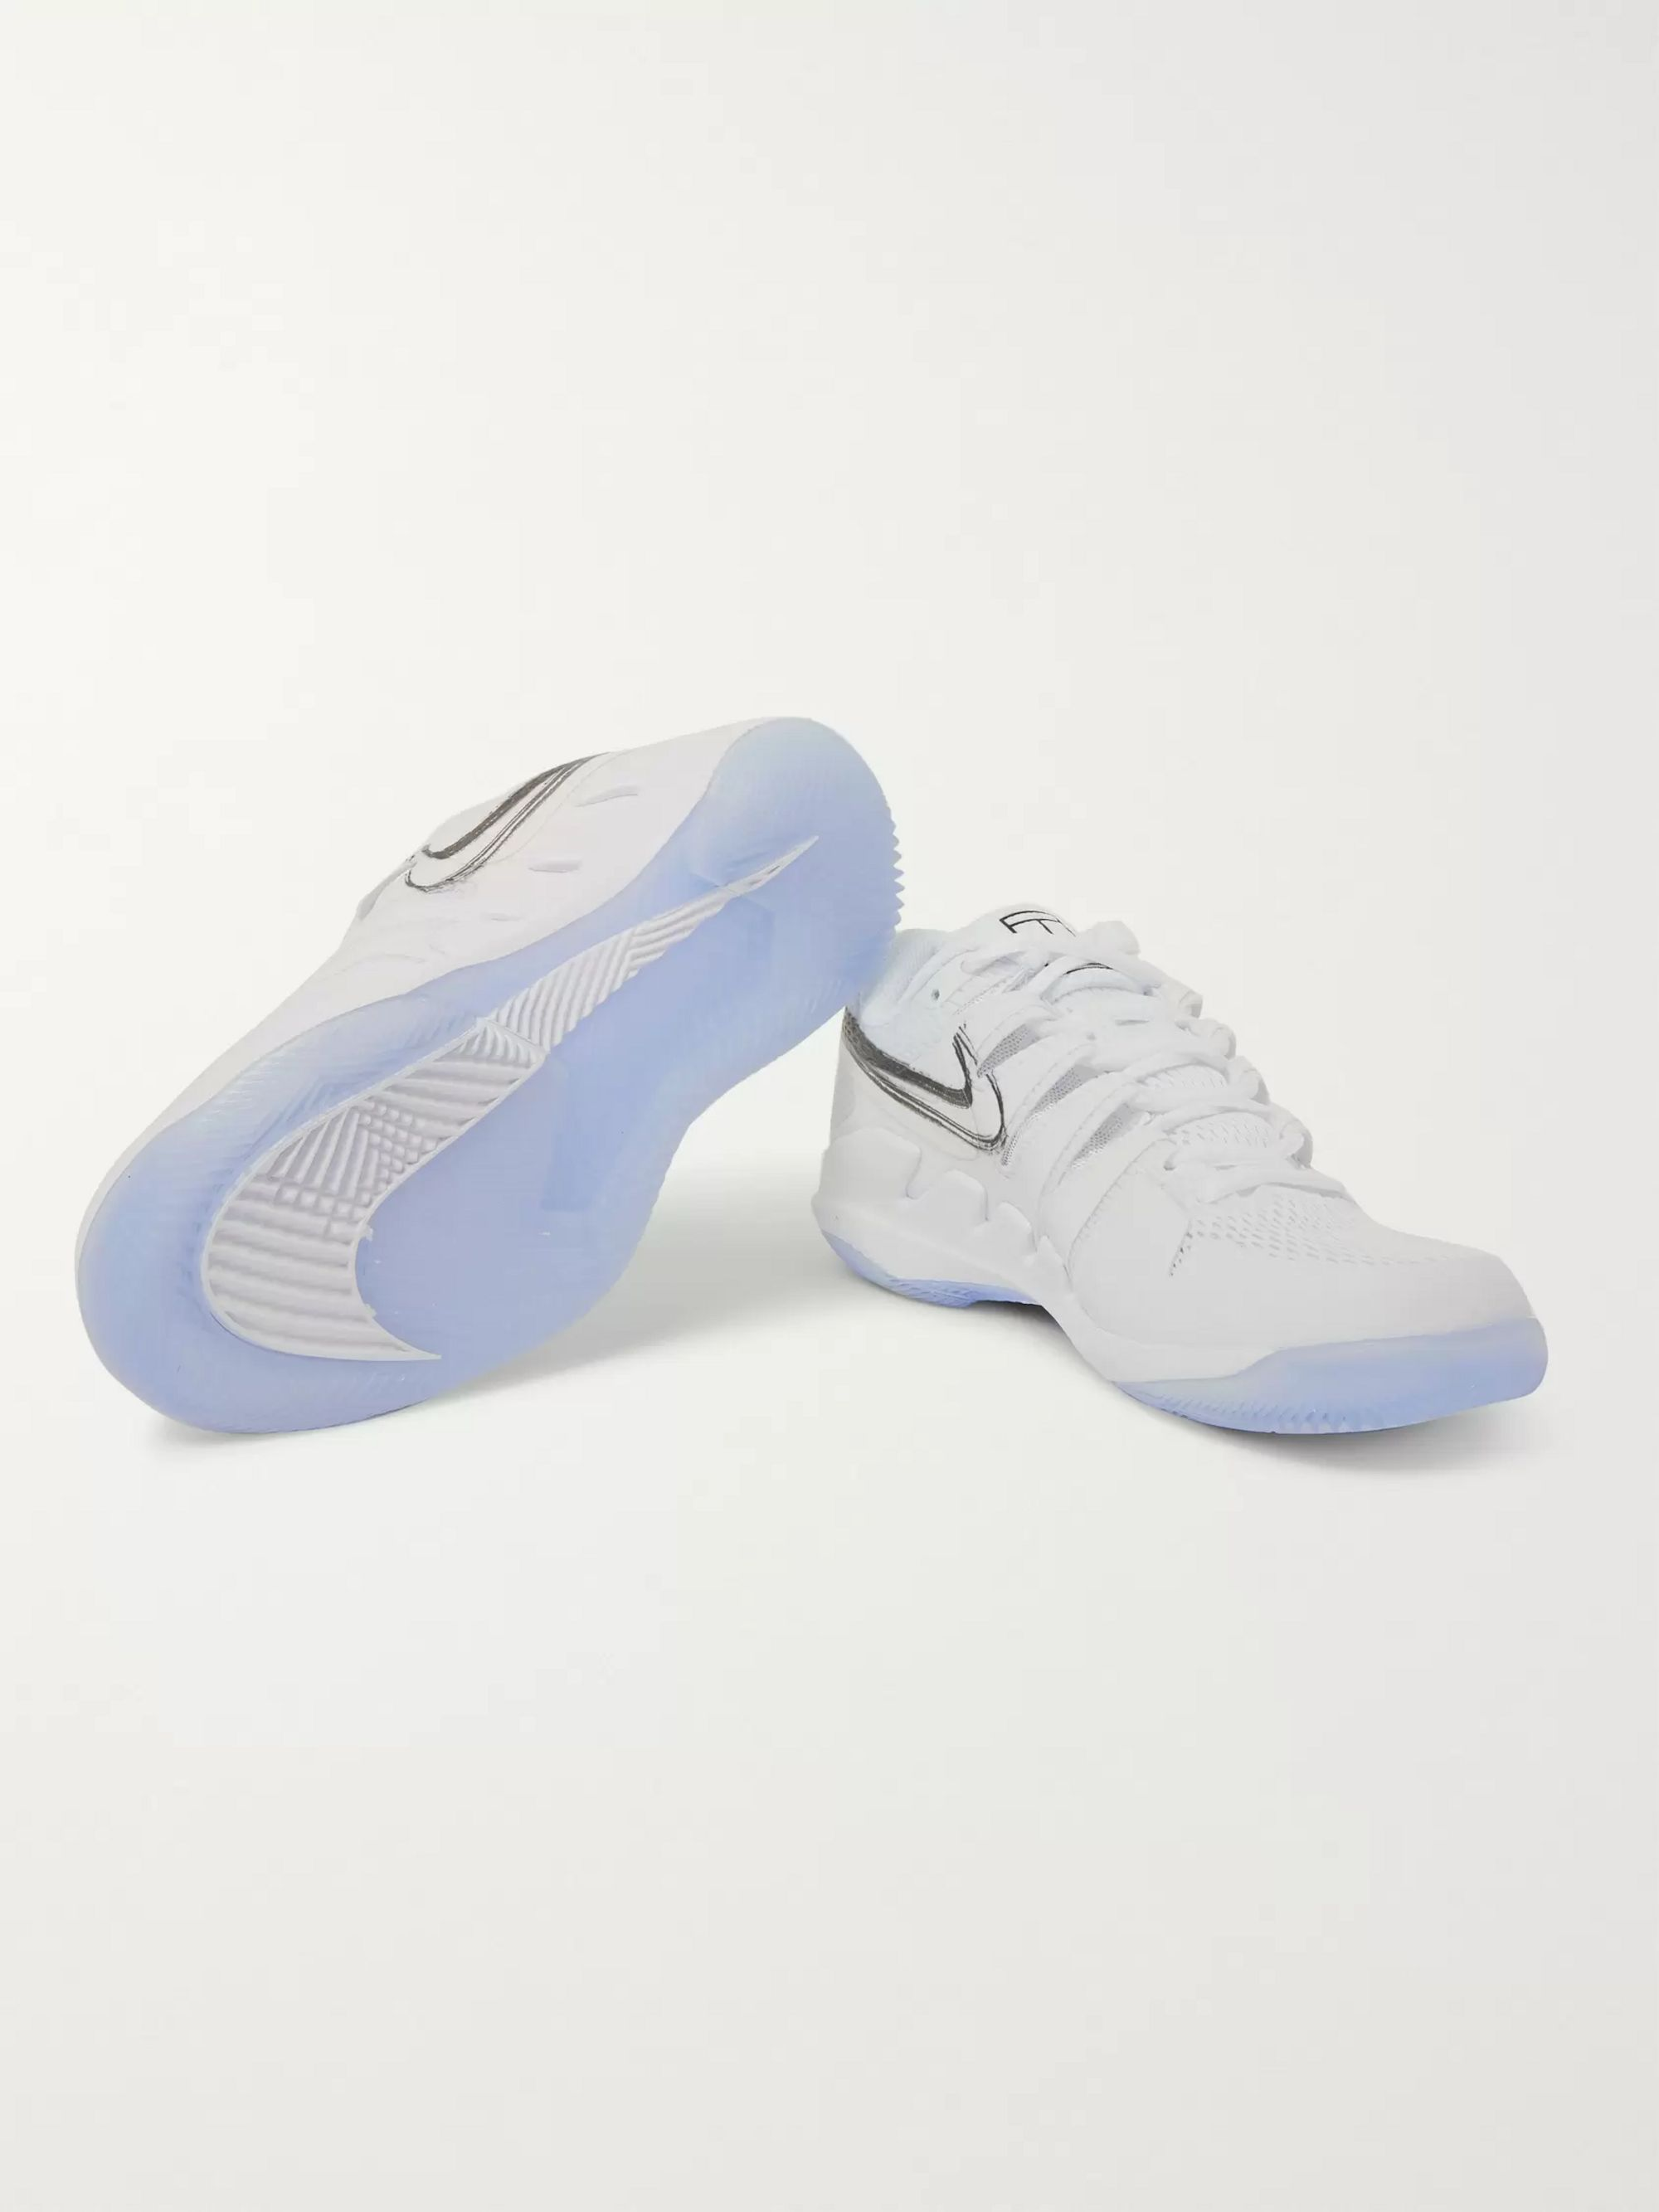 Nike Tennis Air Zoom Vapor X Rubber And Mesh Tennis Sneakers